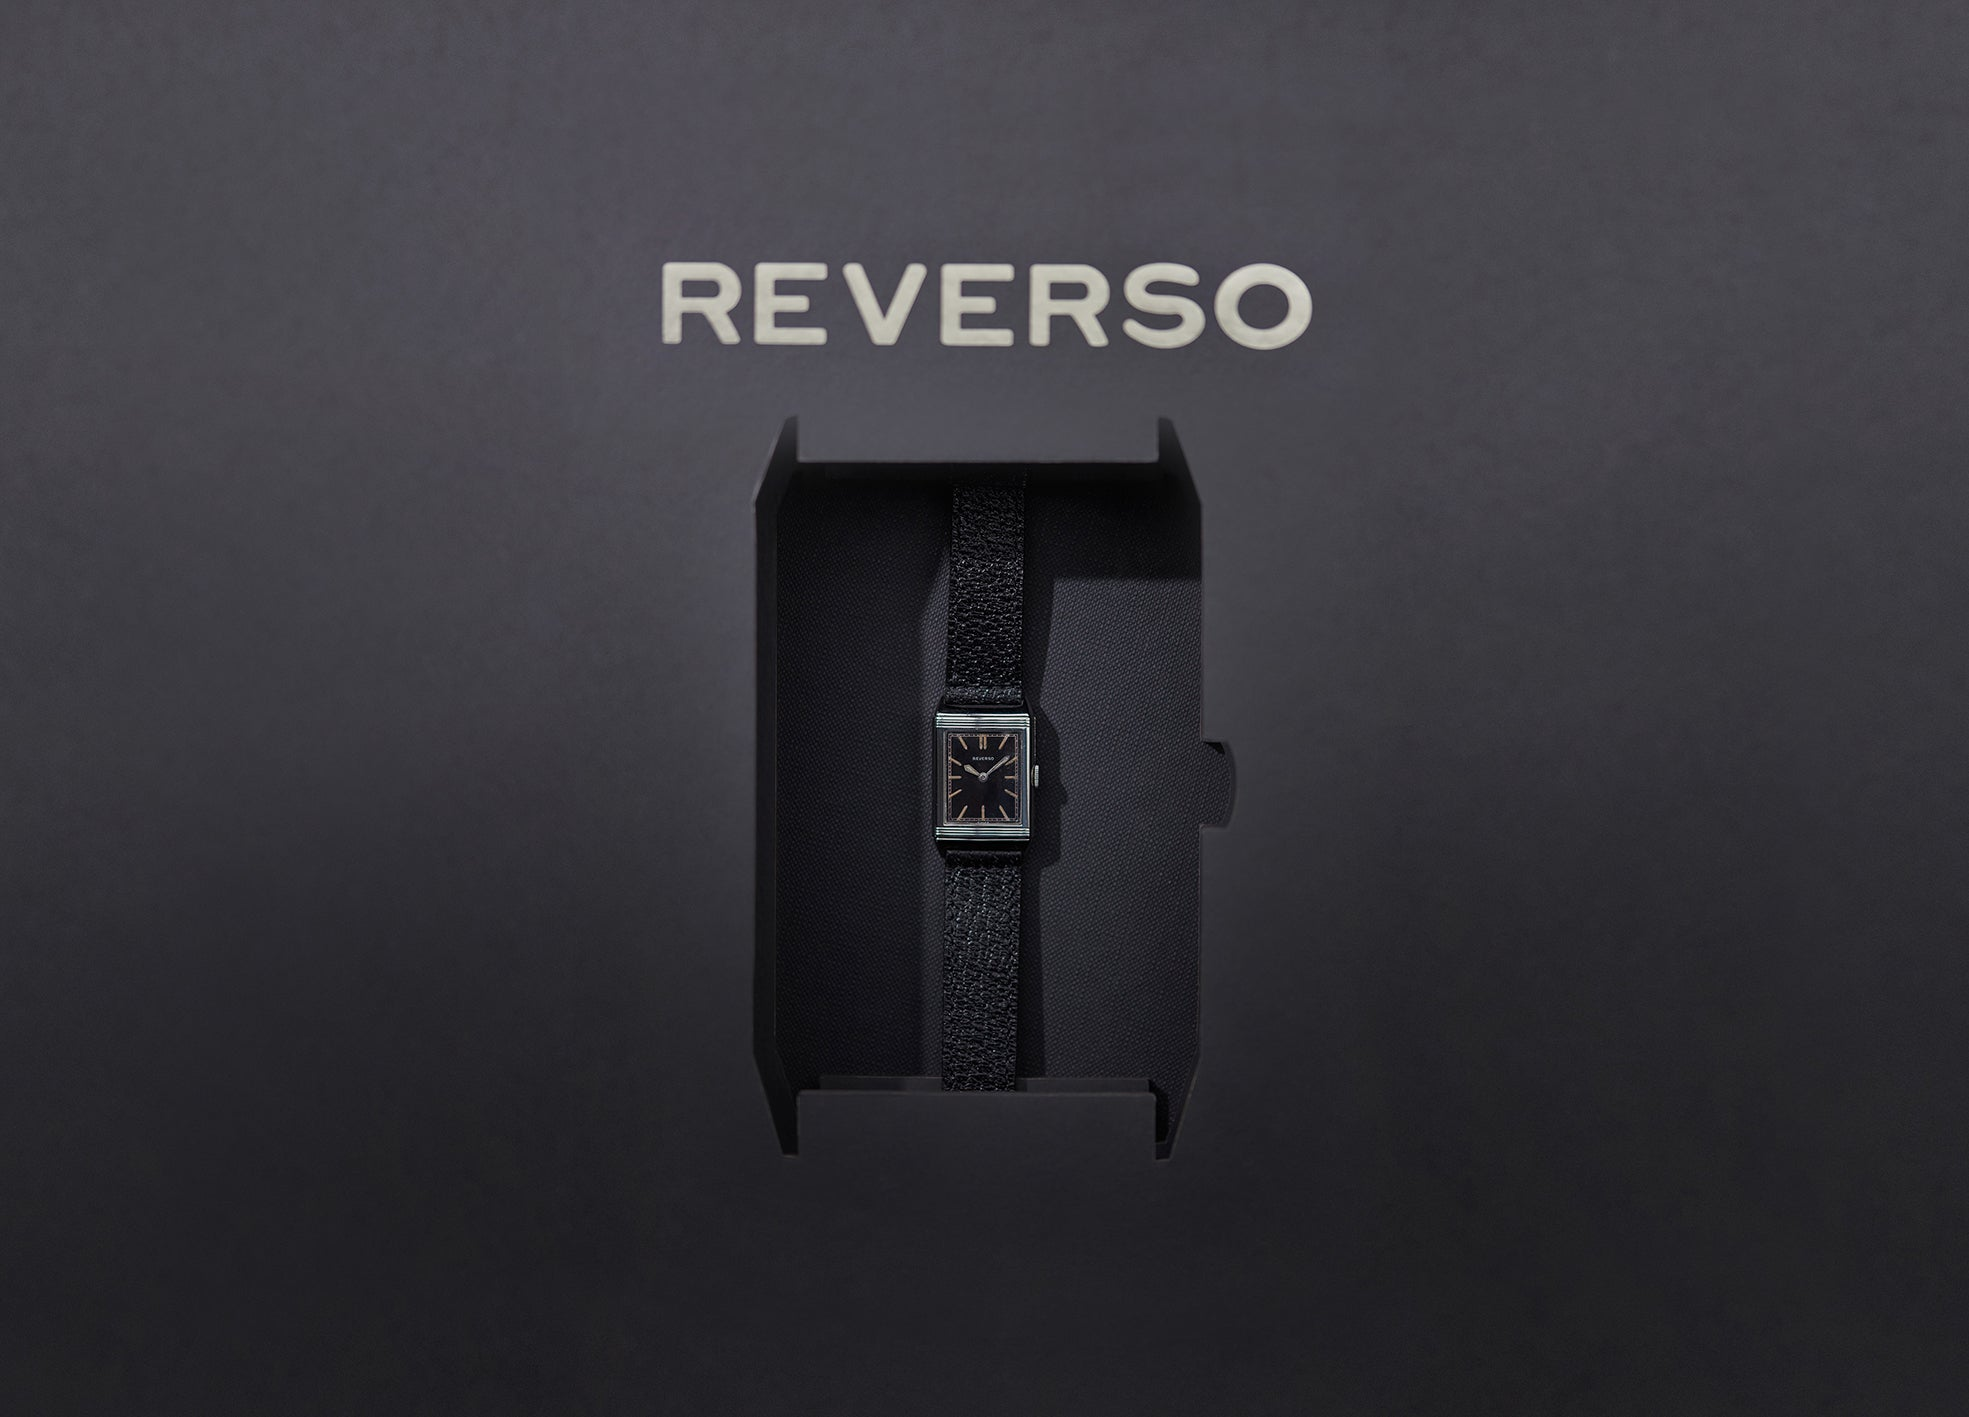 90 year old Jaeger-LeCoultre piece in The Flippin' History of the Reverso for A Collected Man